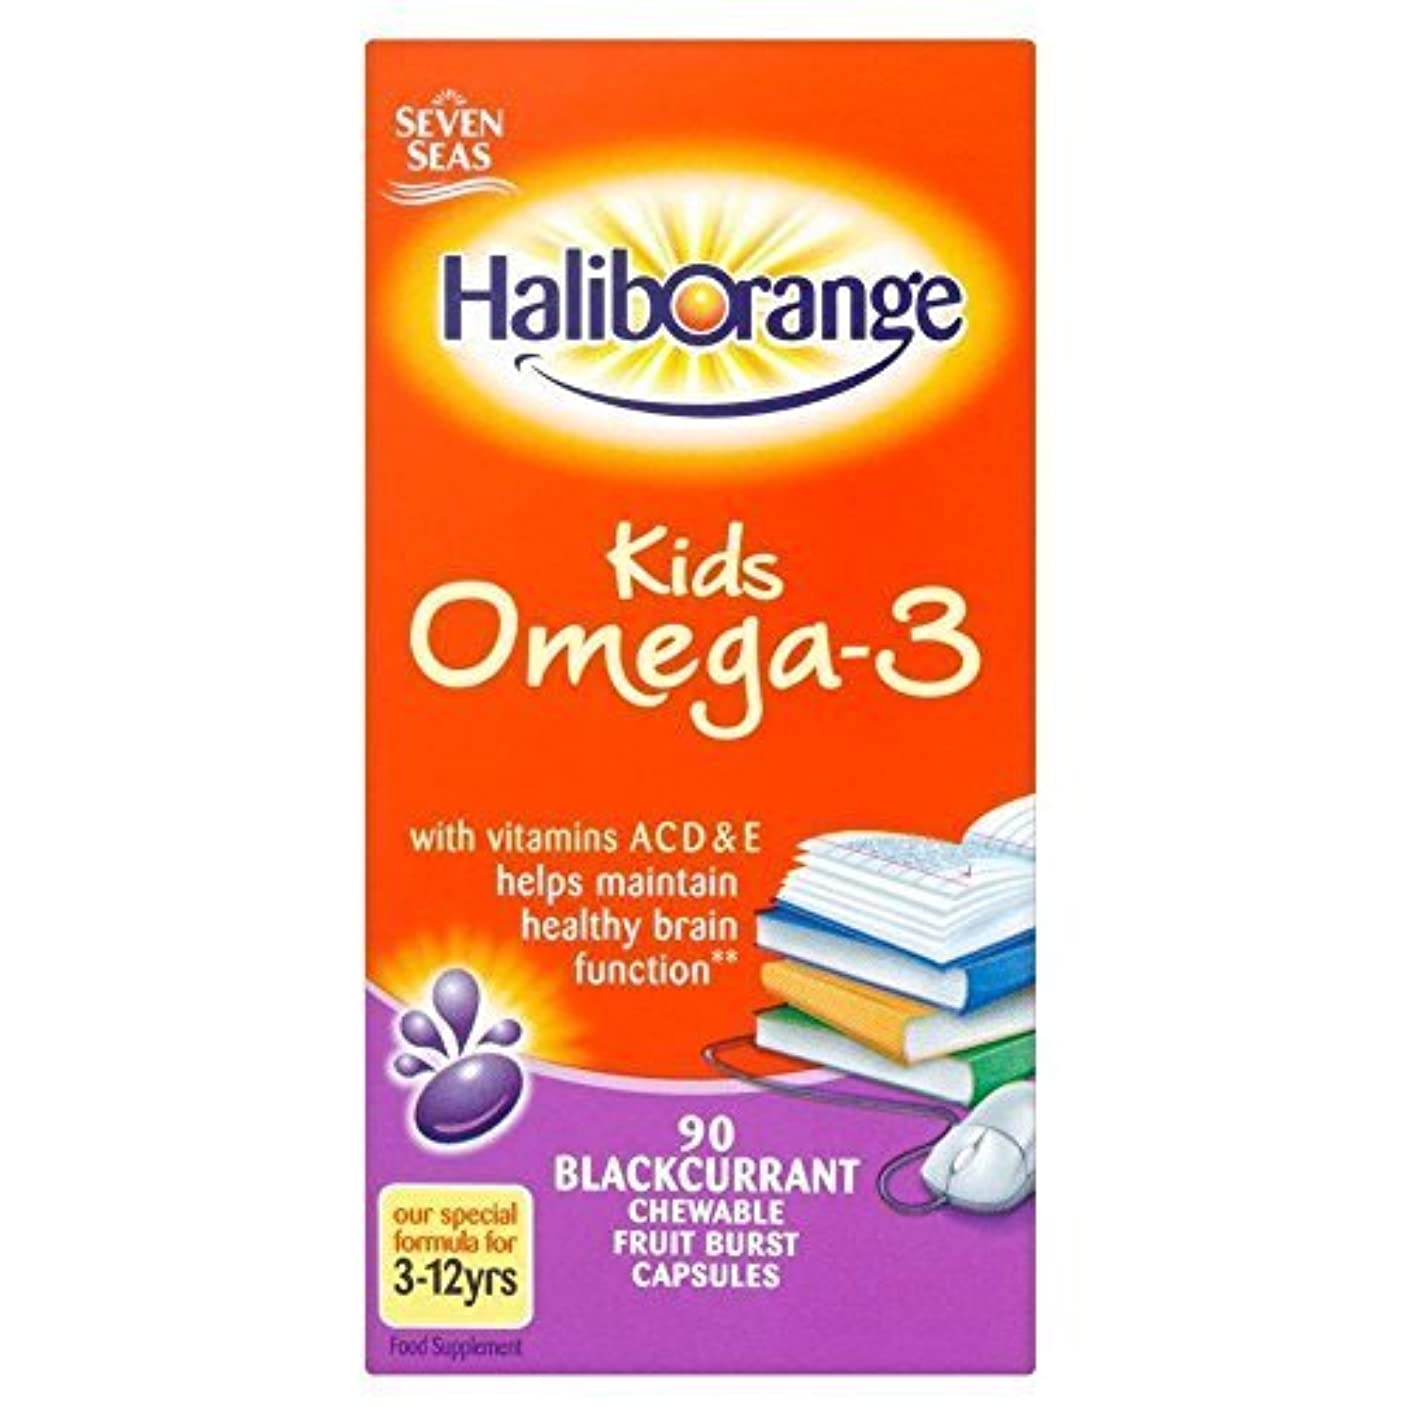 味方のぞき穴ローマ人Haliborange Omega-3 Fish Oil Blackcurrant Chewy Capsules (90) by Grocery [並行輸入品]